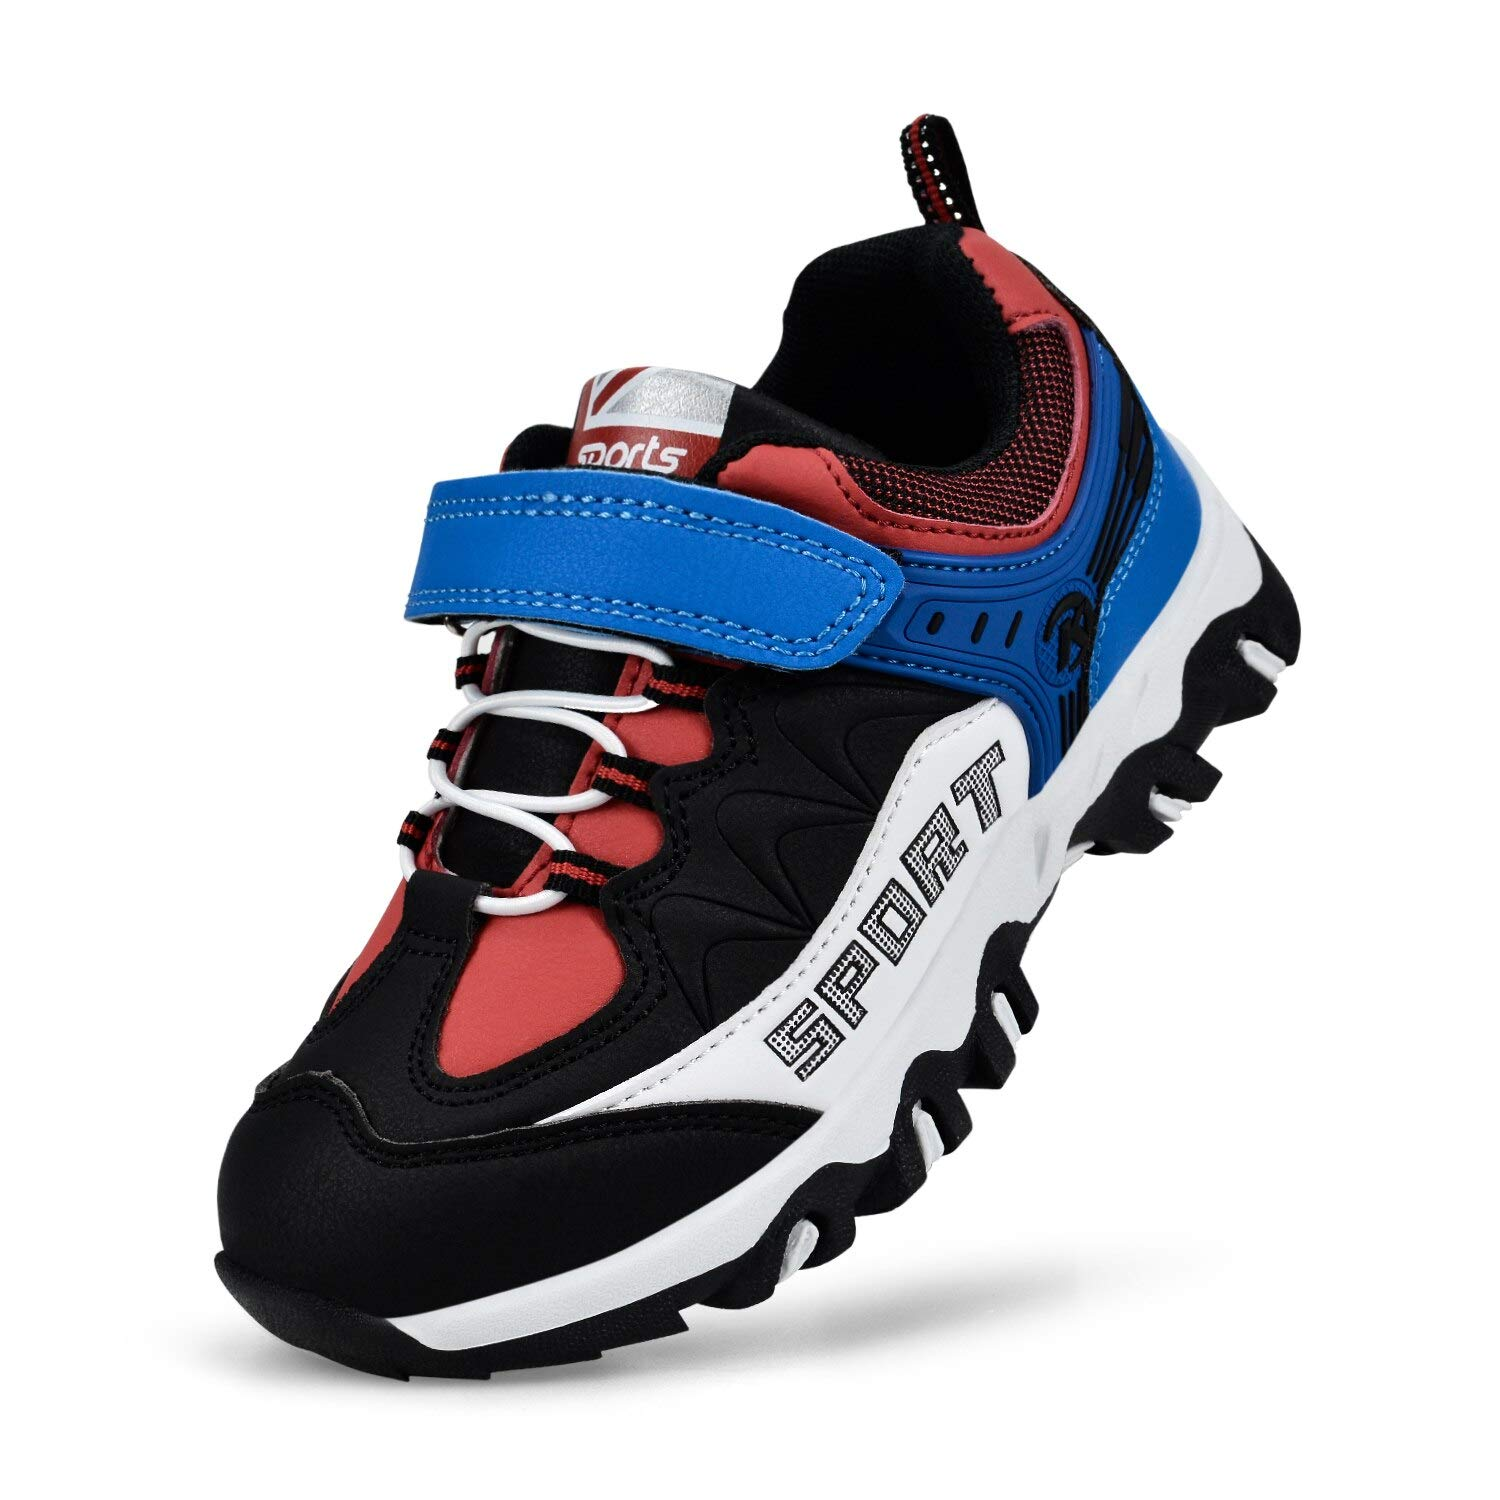 MARSVOVO Girl's Shoes Lightweight Outdoor Antiskid Breathable Hiking Running Shoes Sneakers Blue/Red 4 Big Kid by MARSVOVO